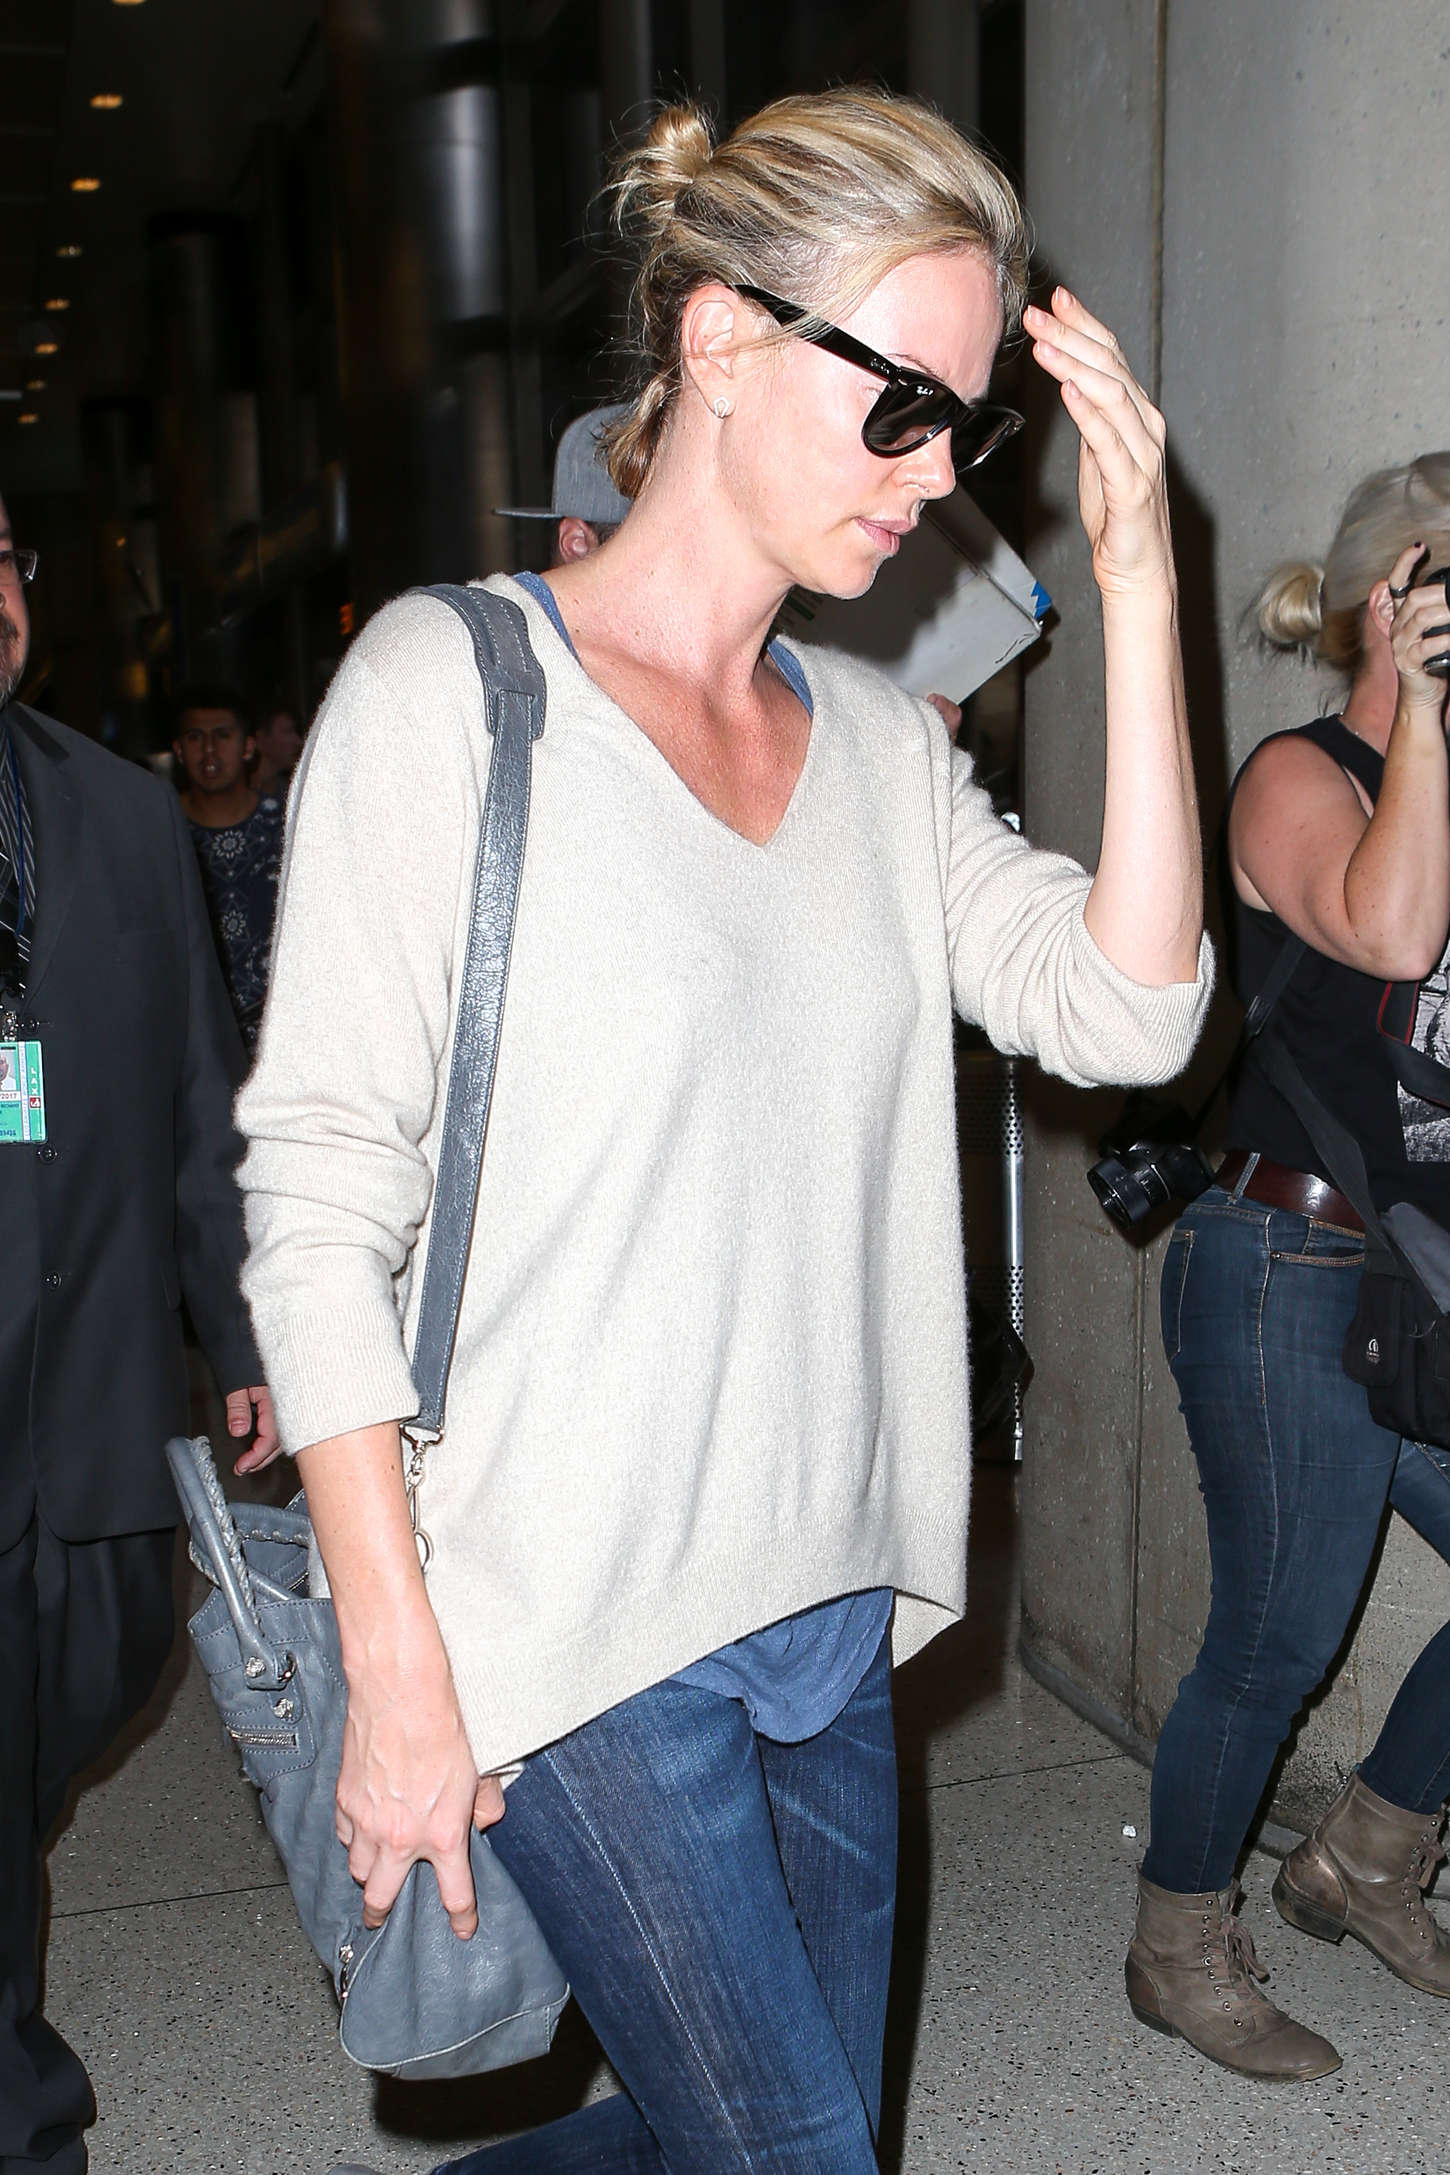 Charlize Theron in Jeans at LAX airport in LA